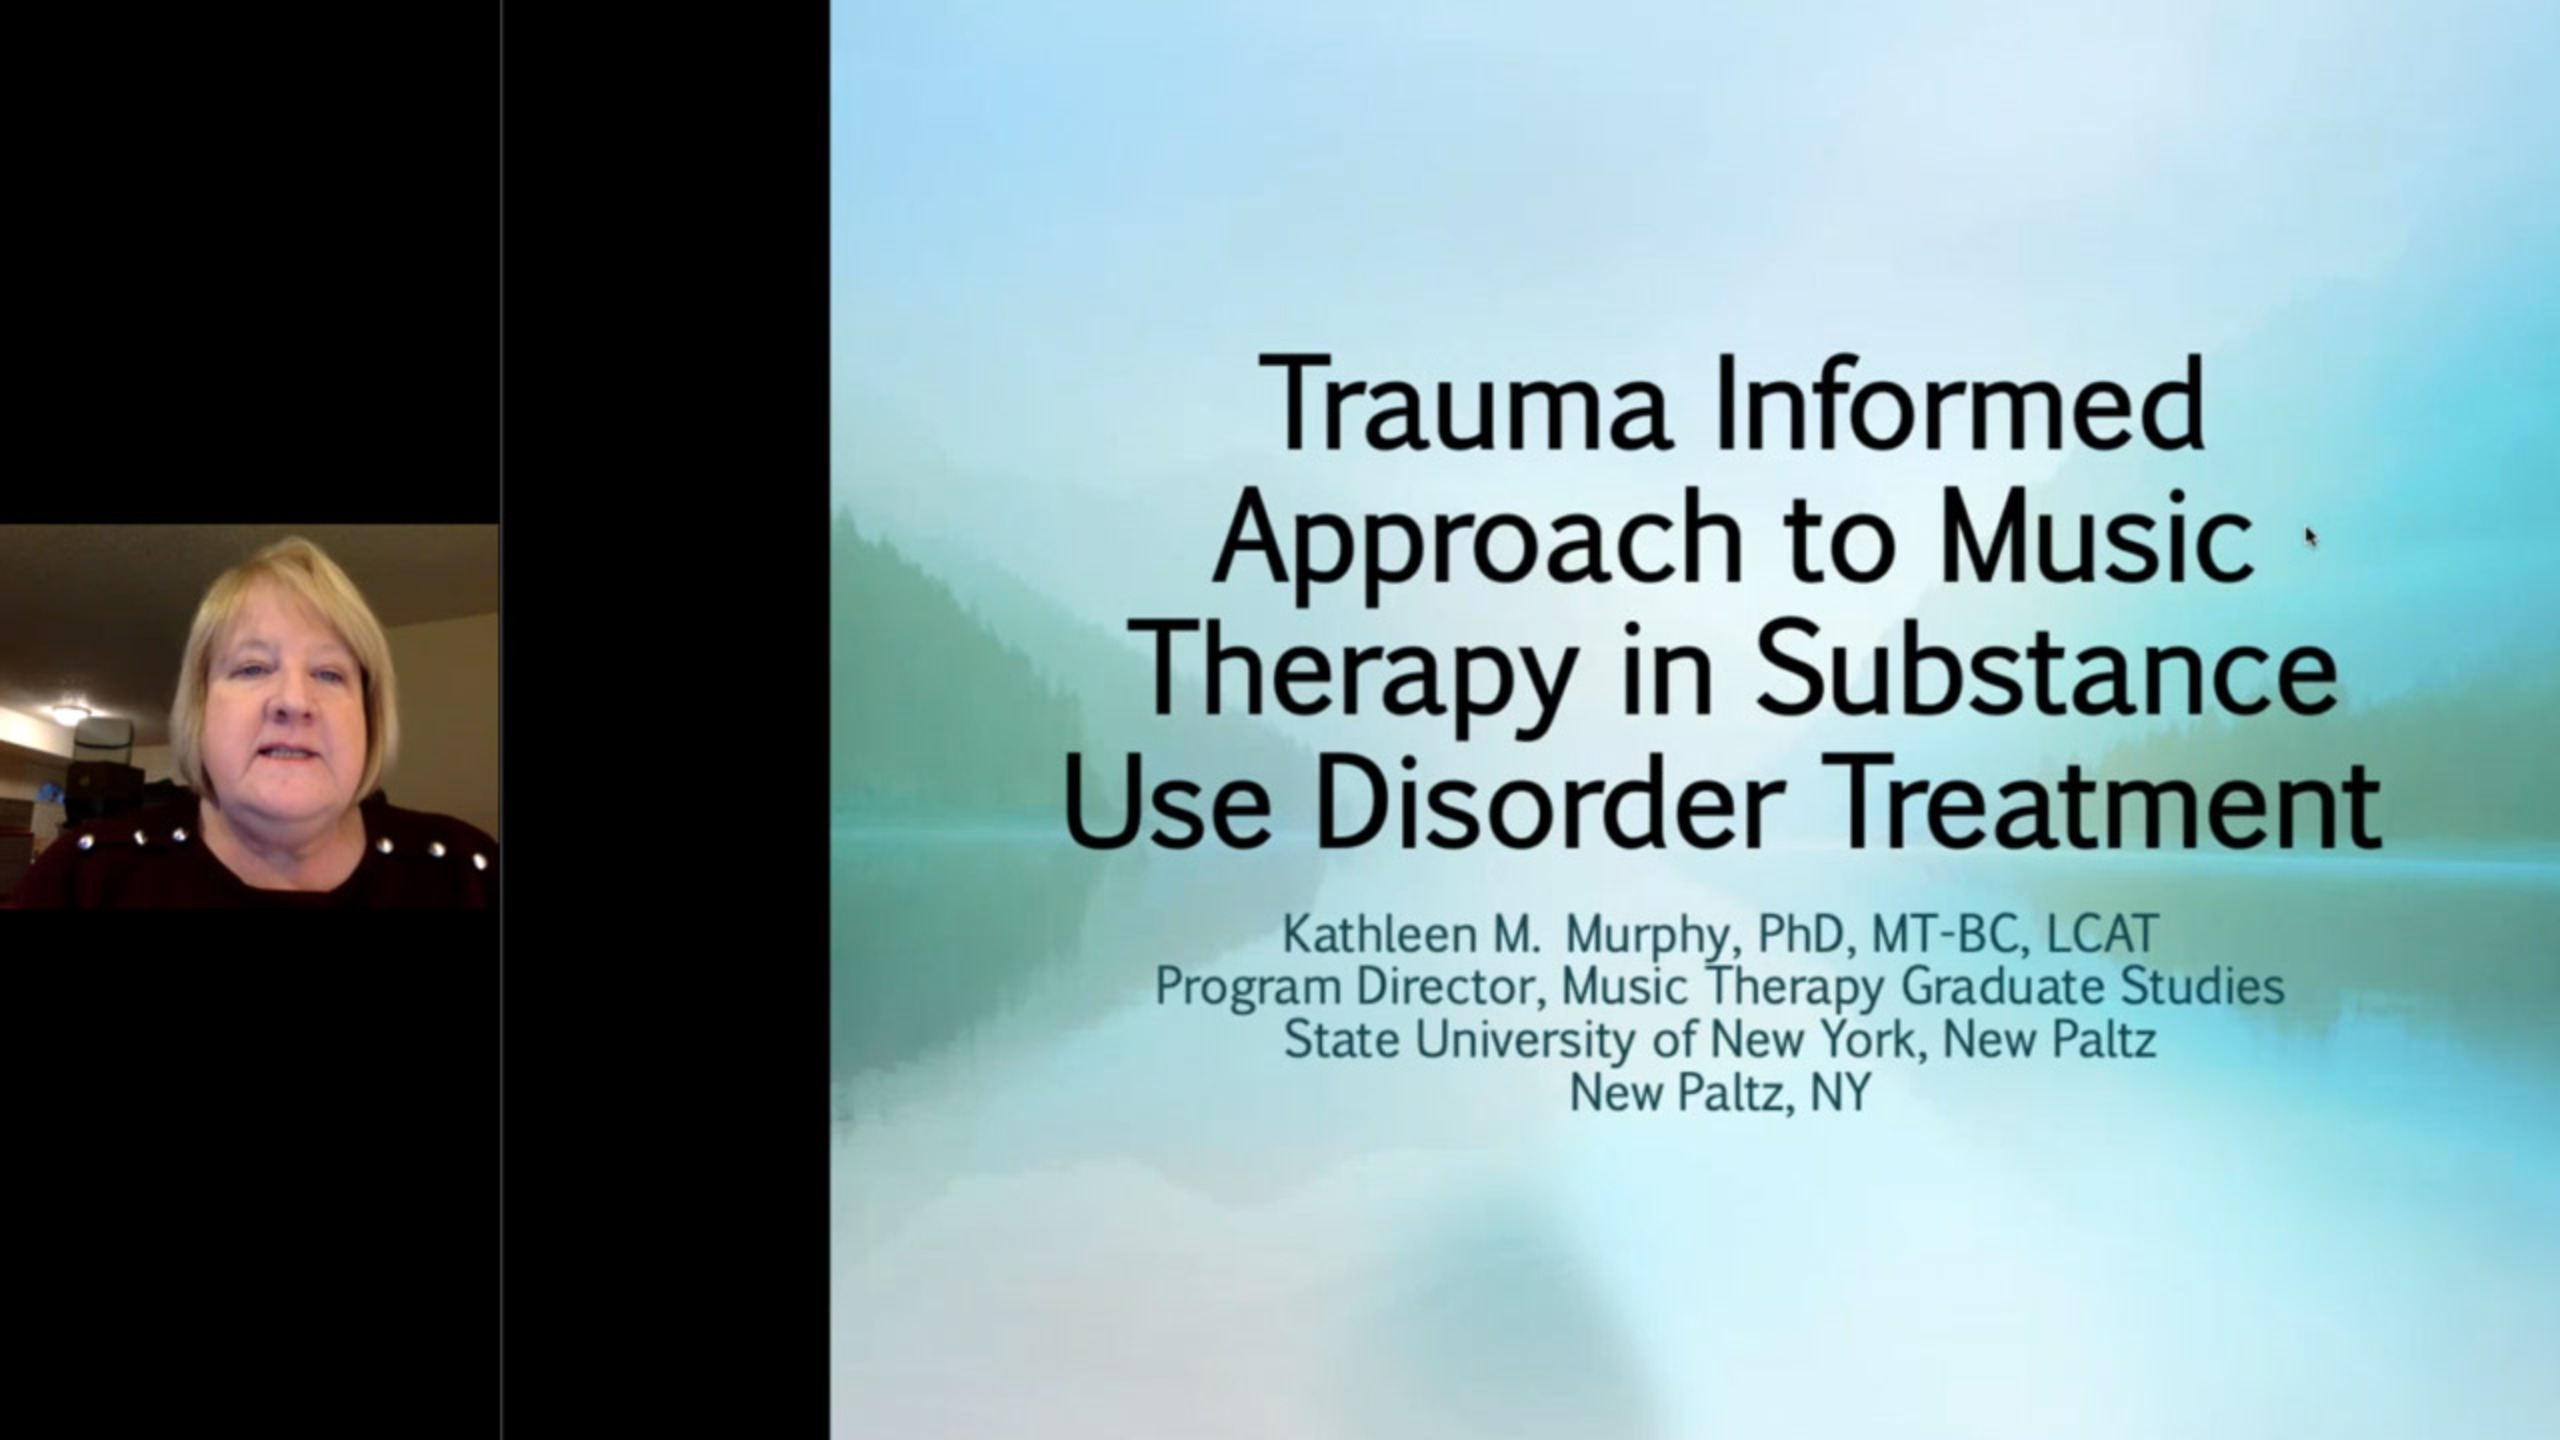 Trauma Informed Approach to Music Therapy in Substance Use Disorder Treatment